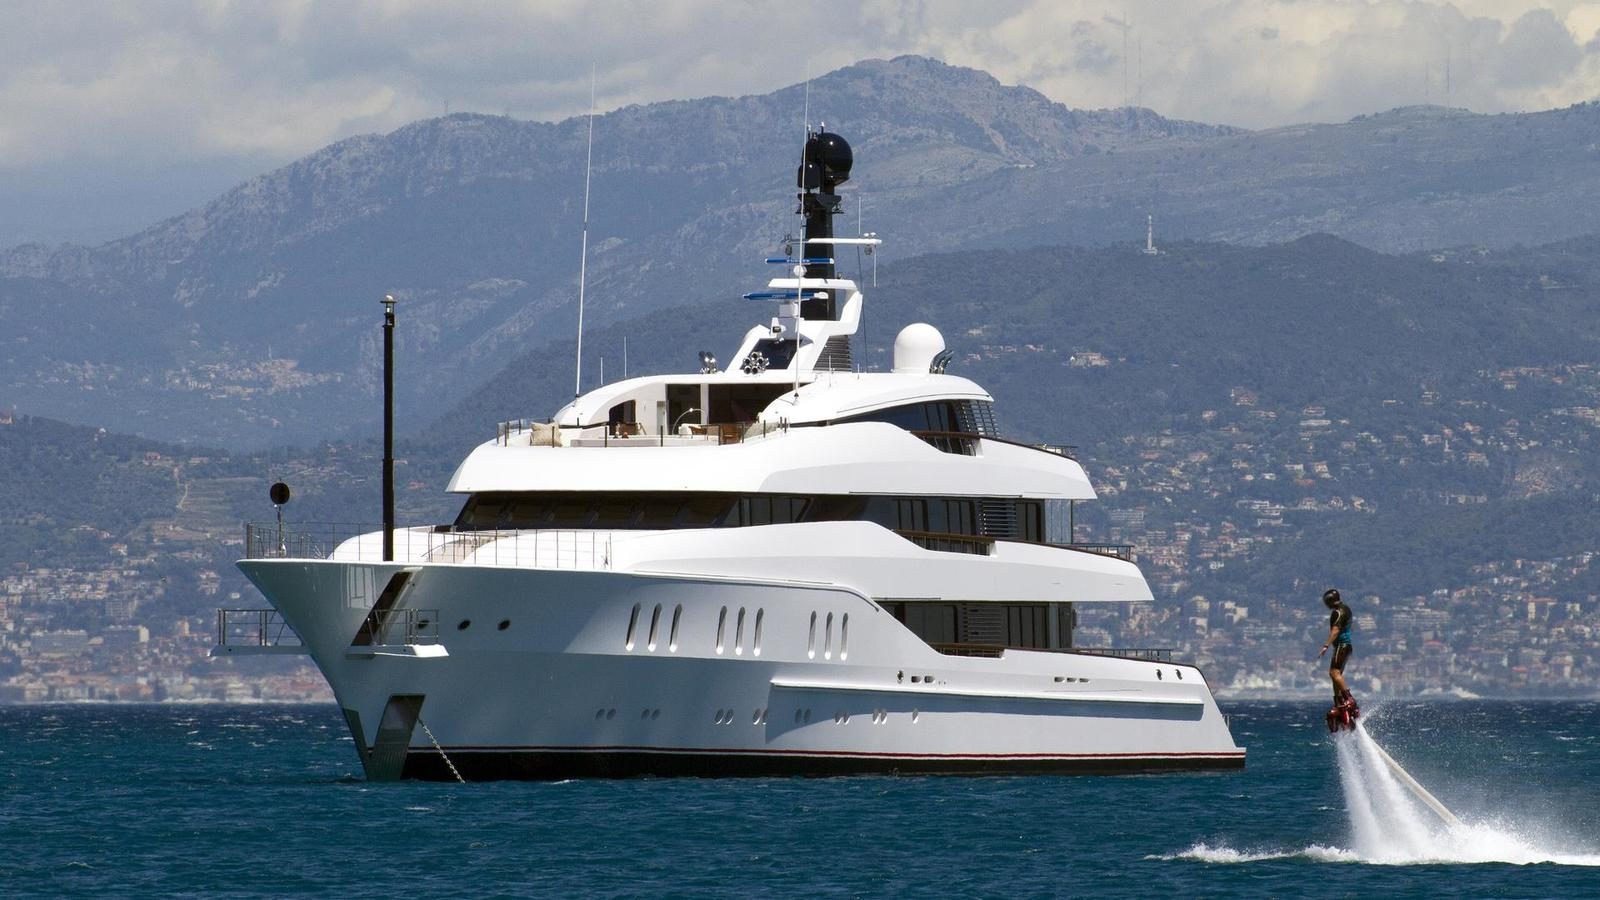 YOU NEED TO KNOW SOMETHING ABOUT THE SUPERYACHT MARKET